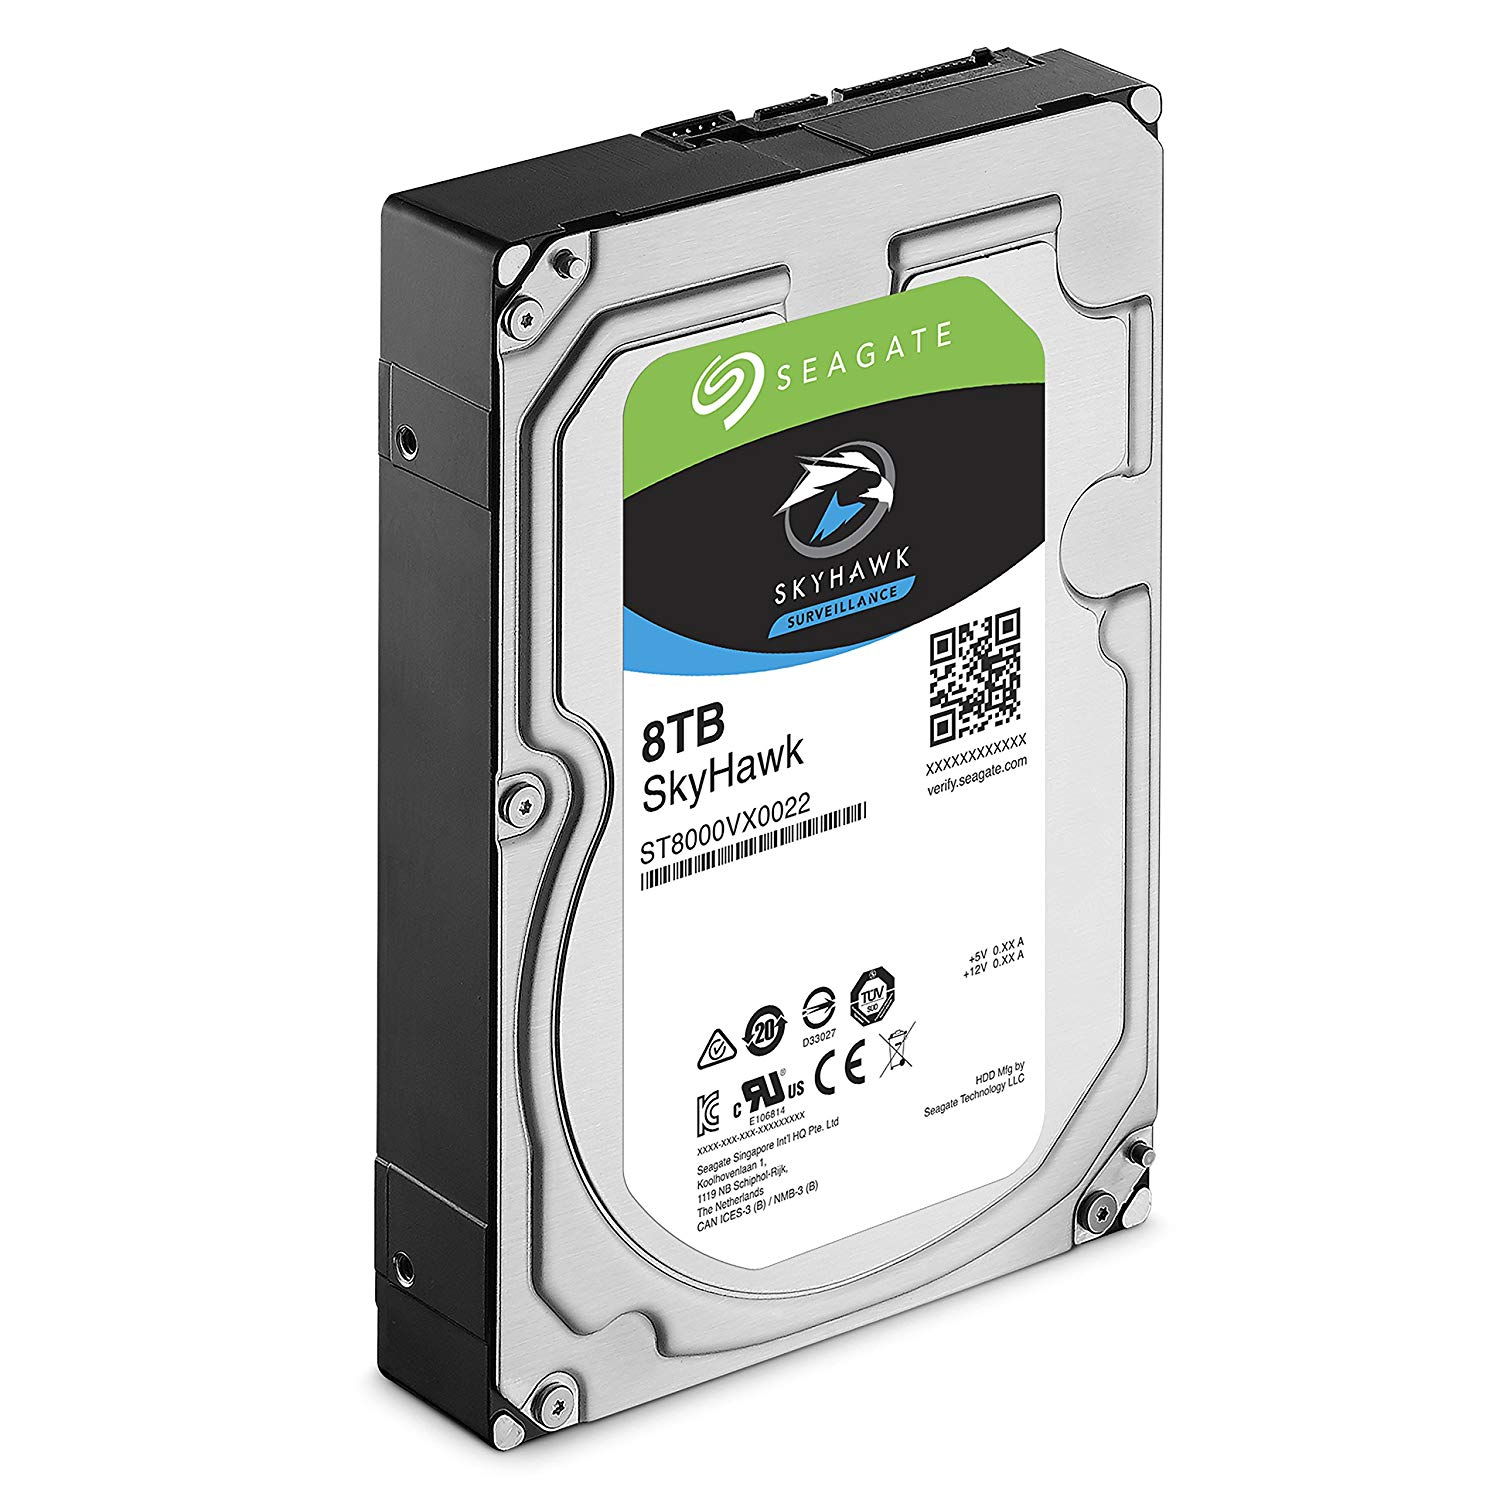 Photo of a Seagate Skyhawk 8TB hard drive for surveillance.